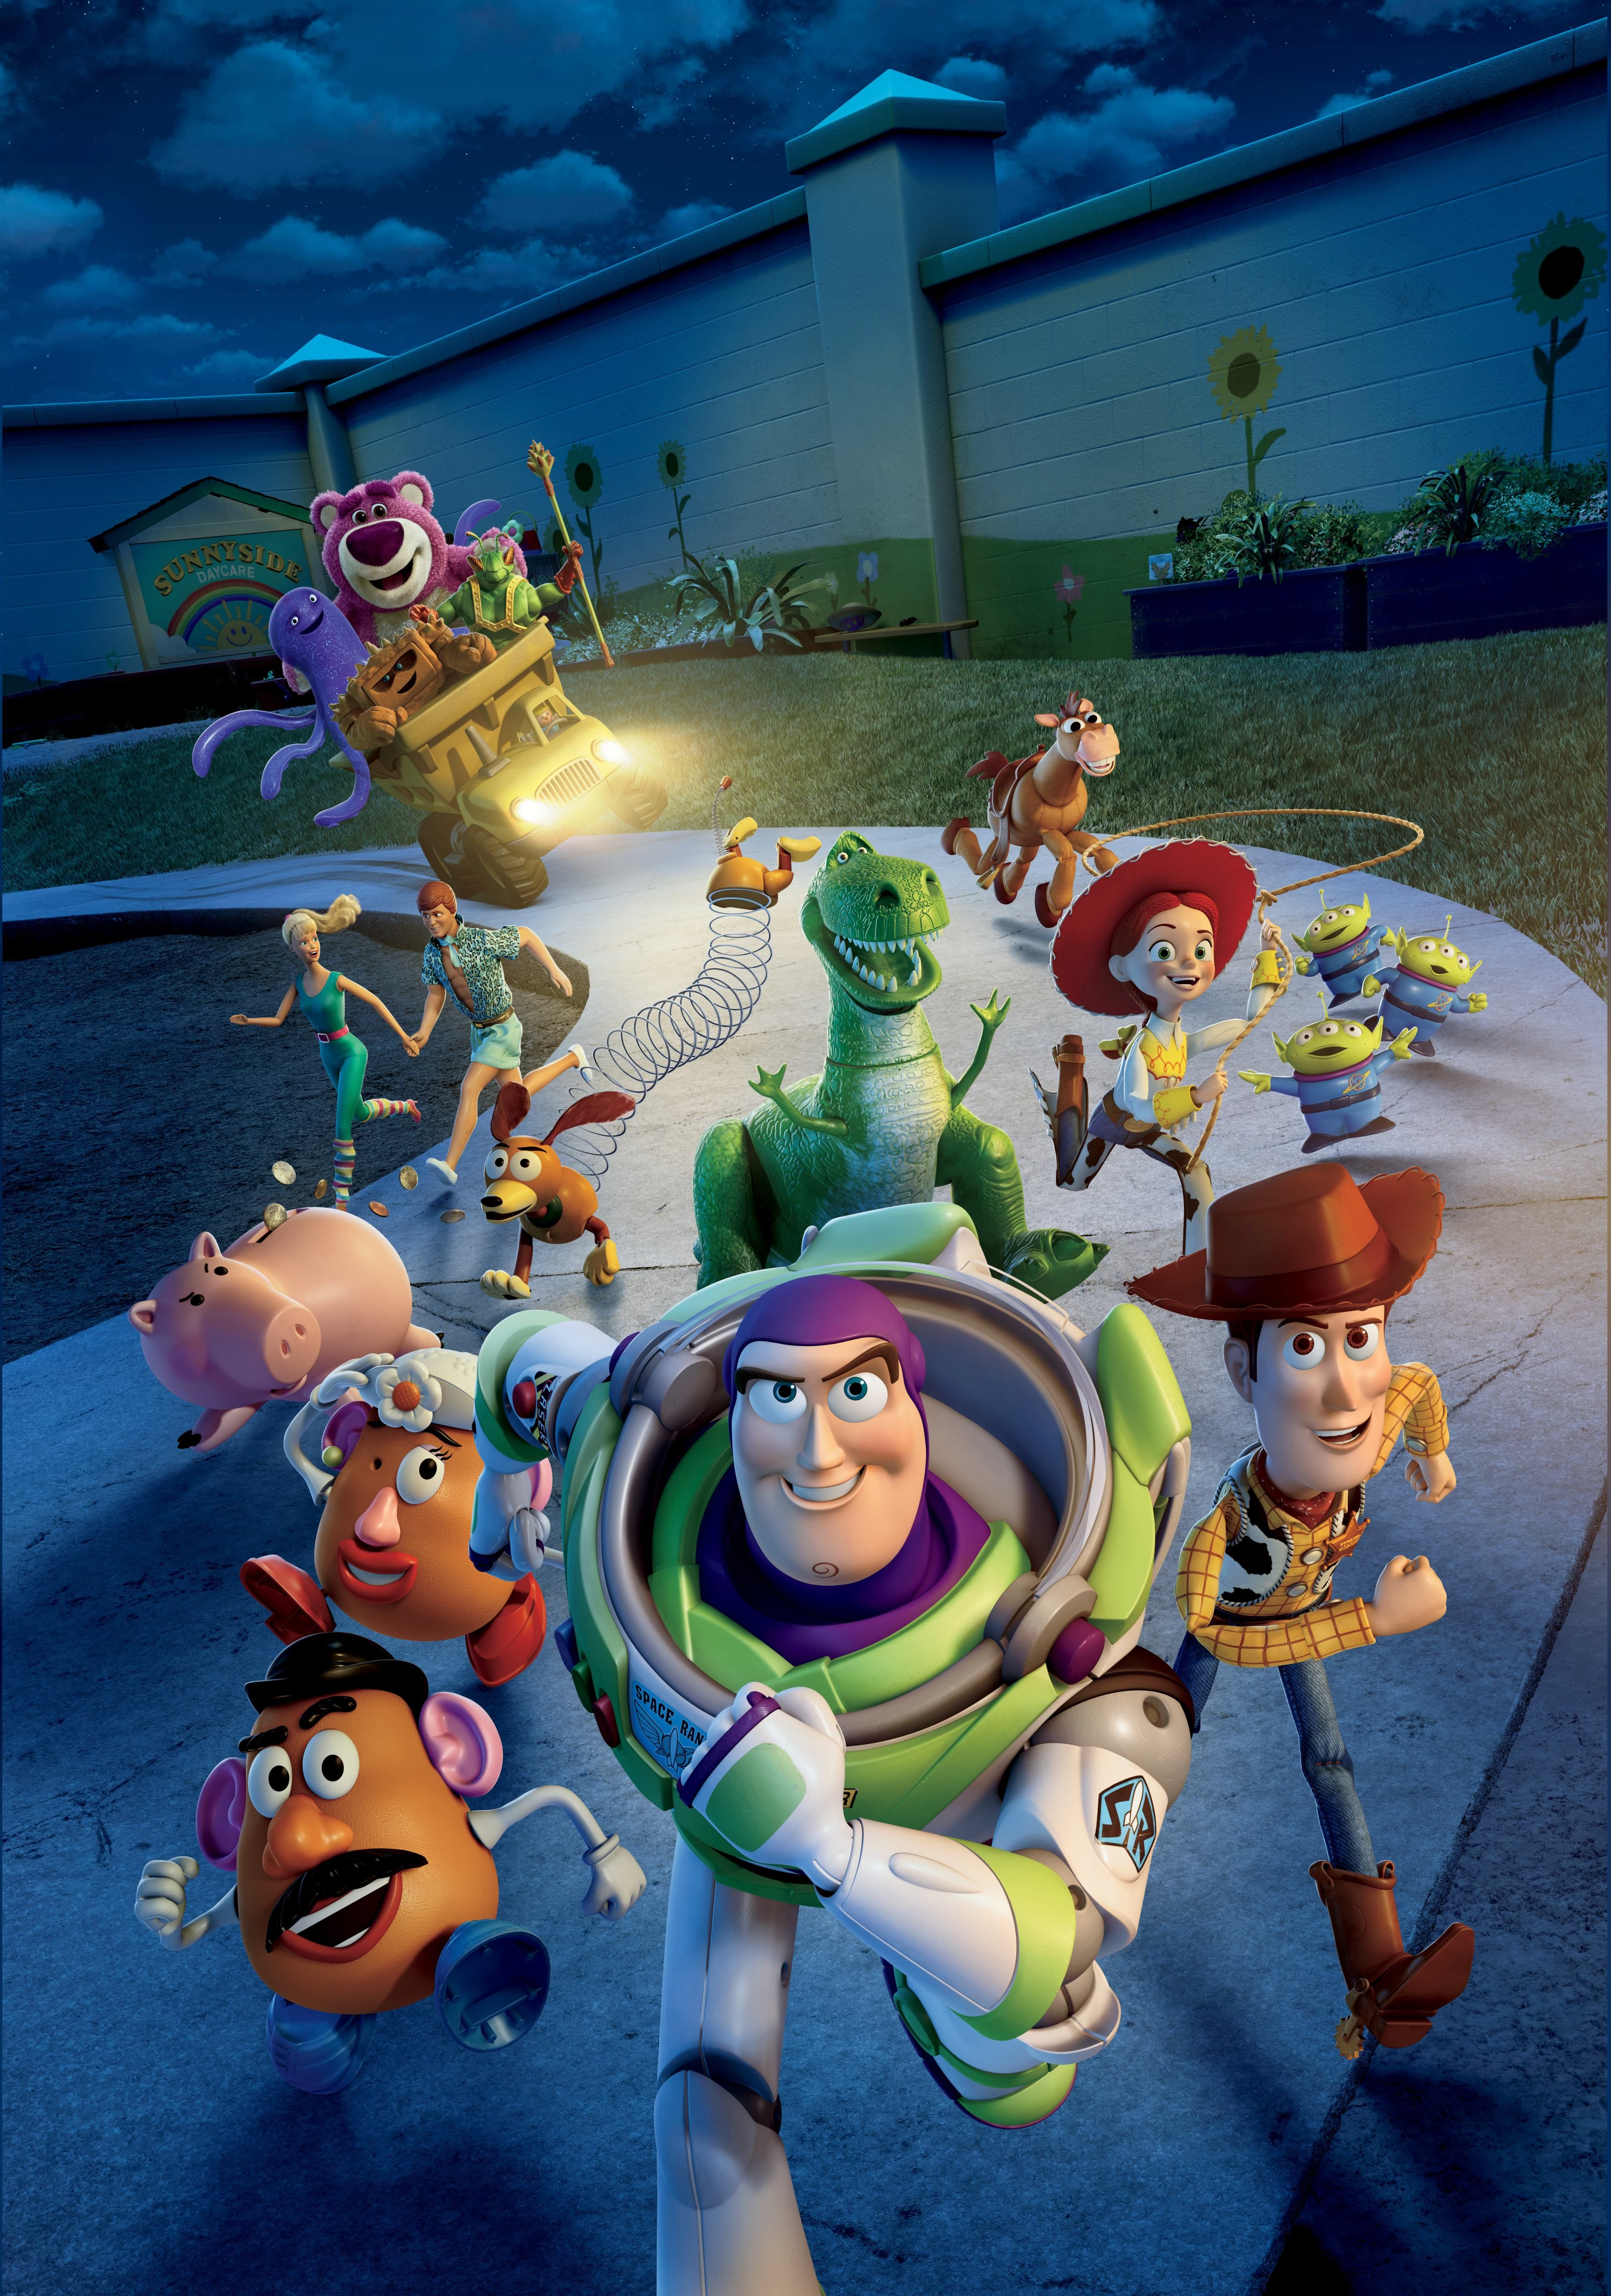 toy story 3 poster Toy story 3 movie, Toy story movie